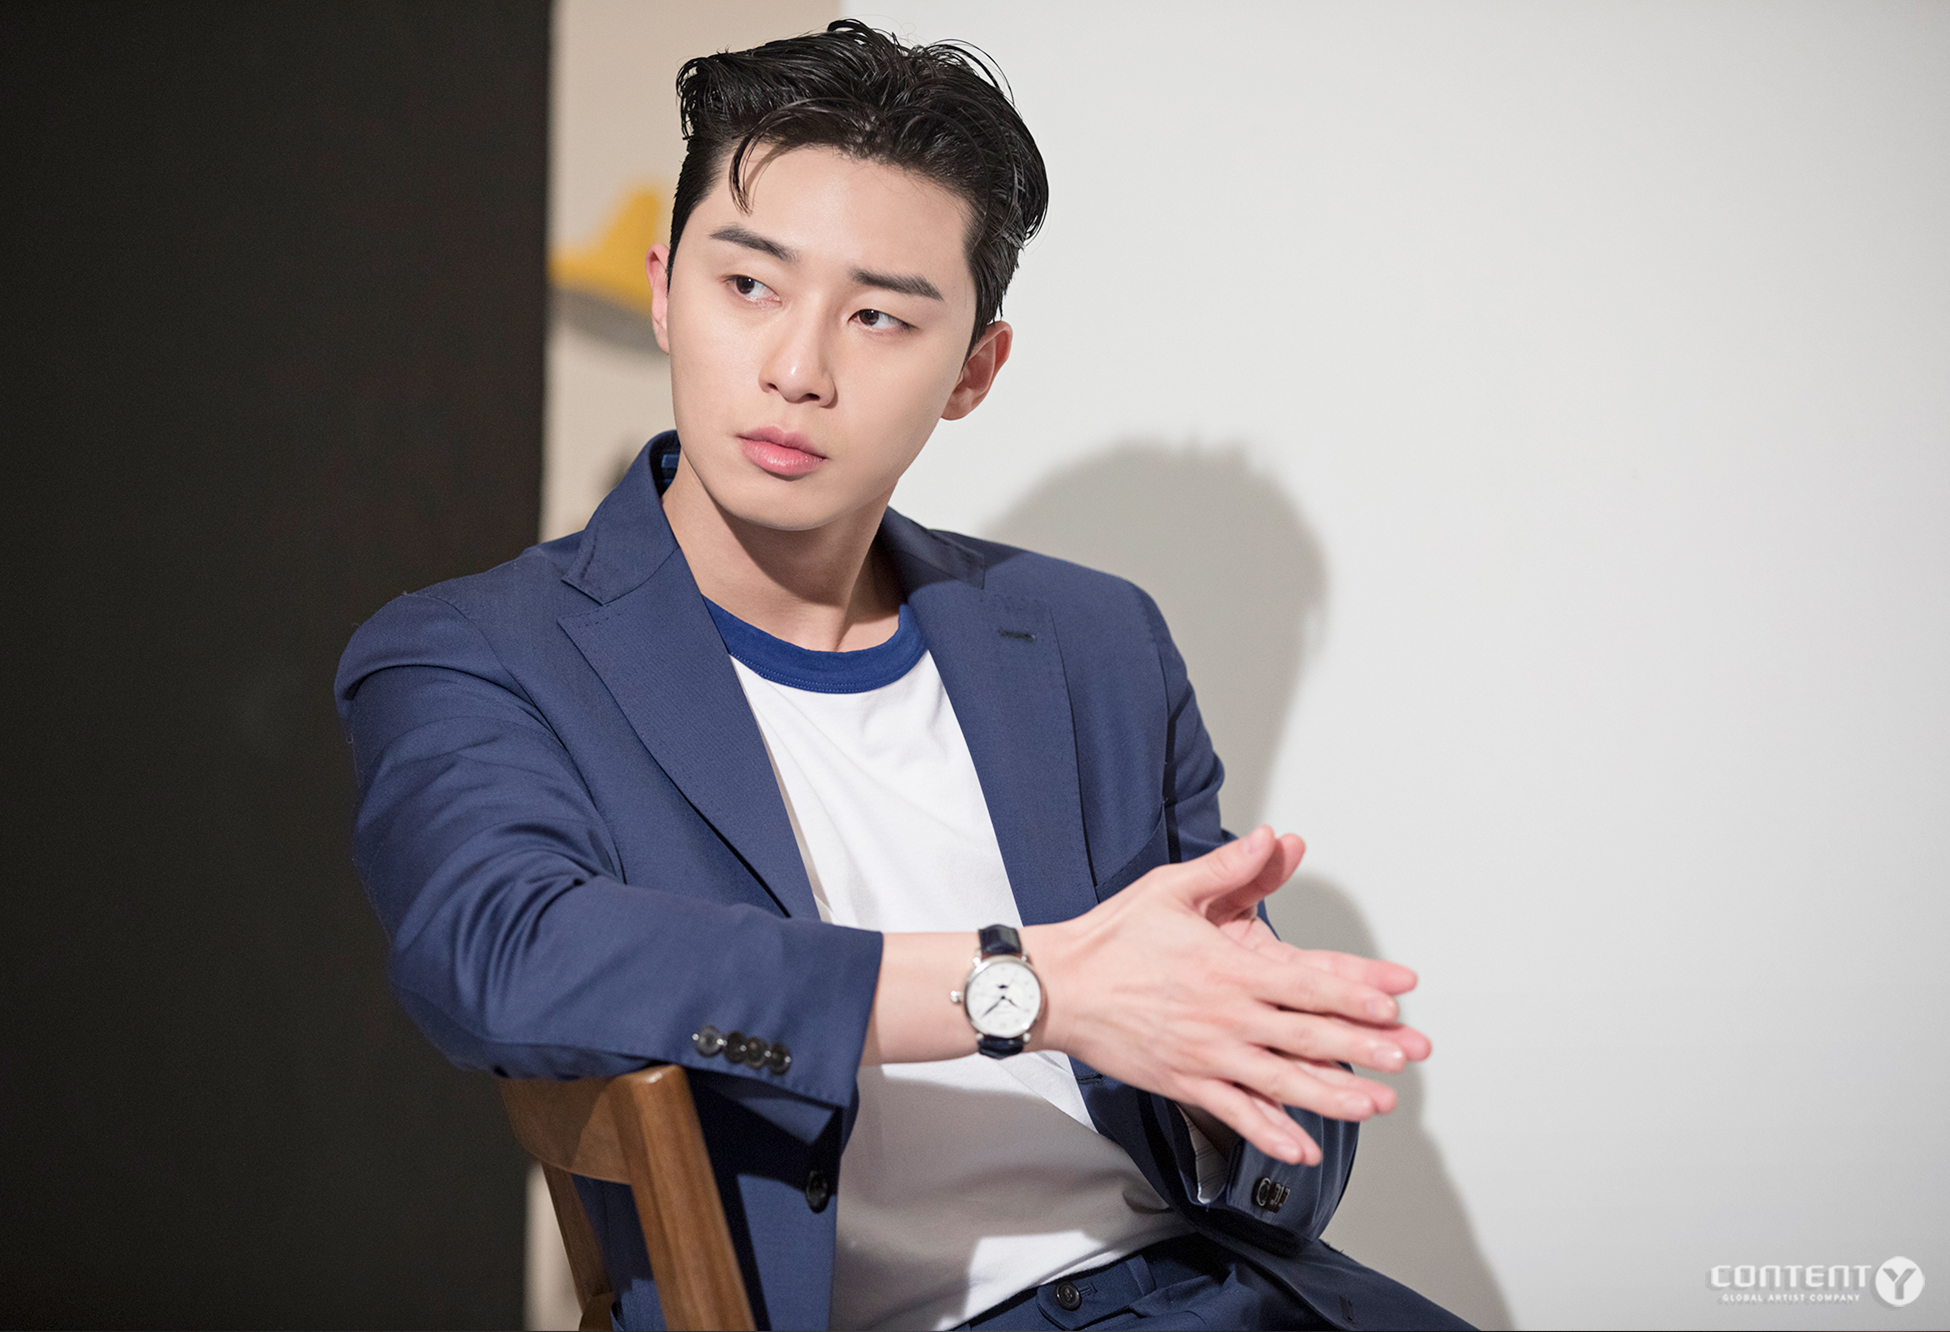 most handsome korean actors, handsome korean actors, park seo joon